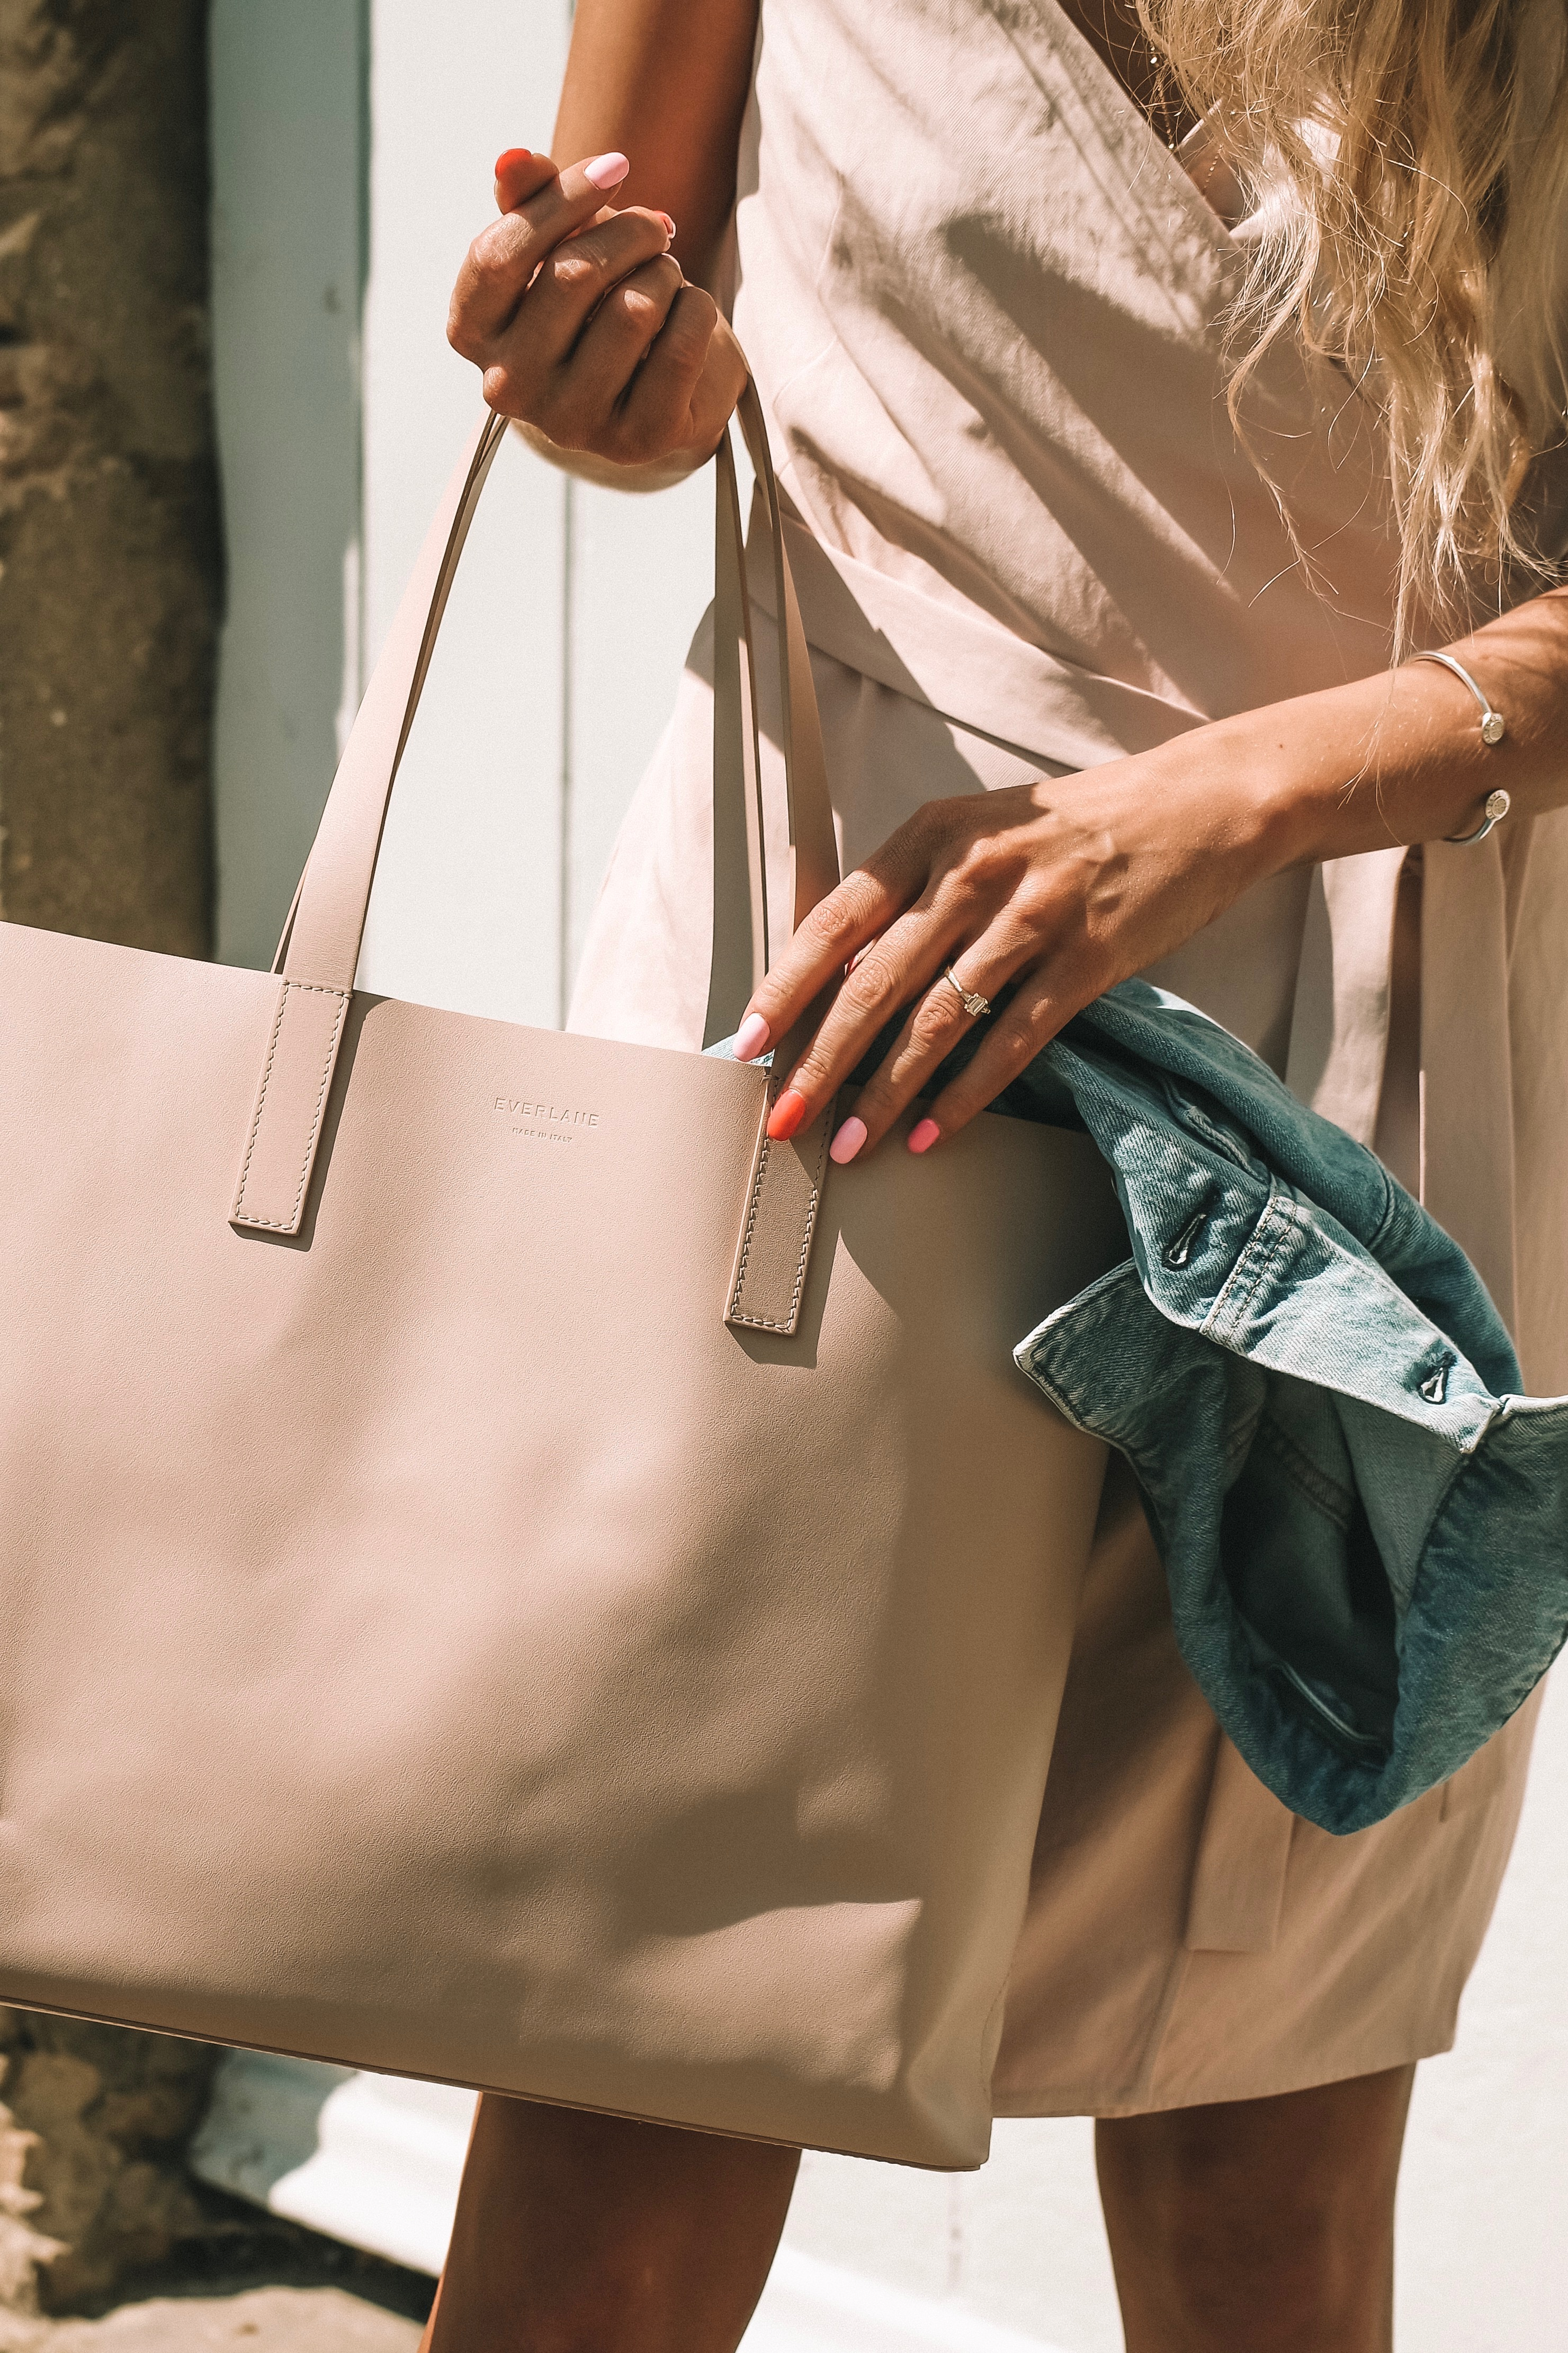 6b02ec6babb4 Leather Everlane Day Market Tote - Summer Style Pin this ...